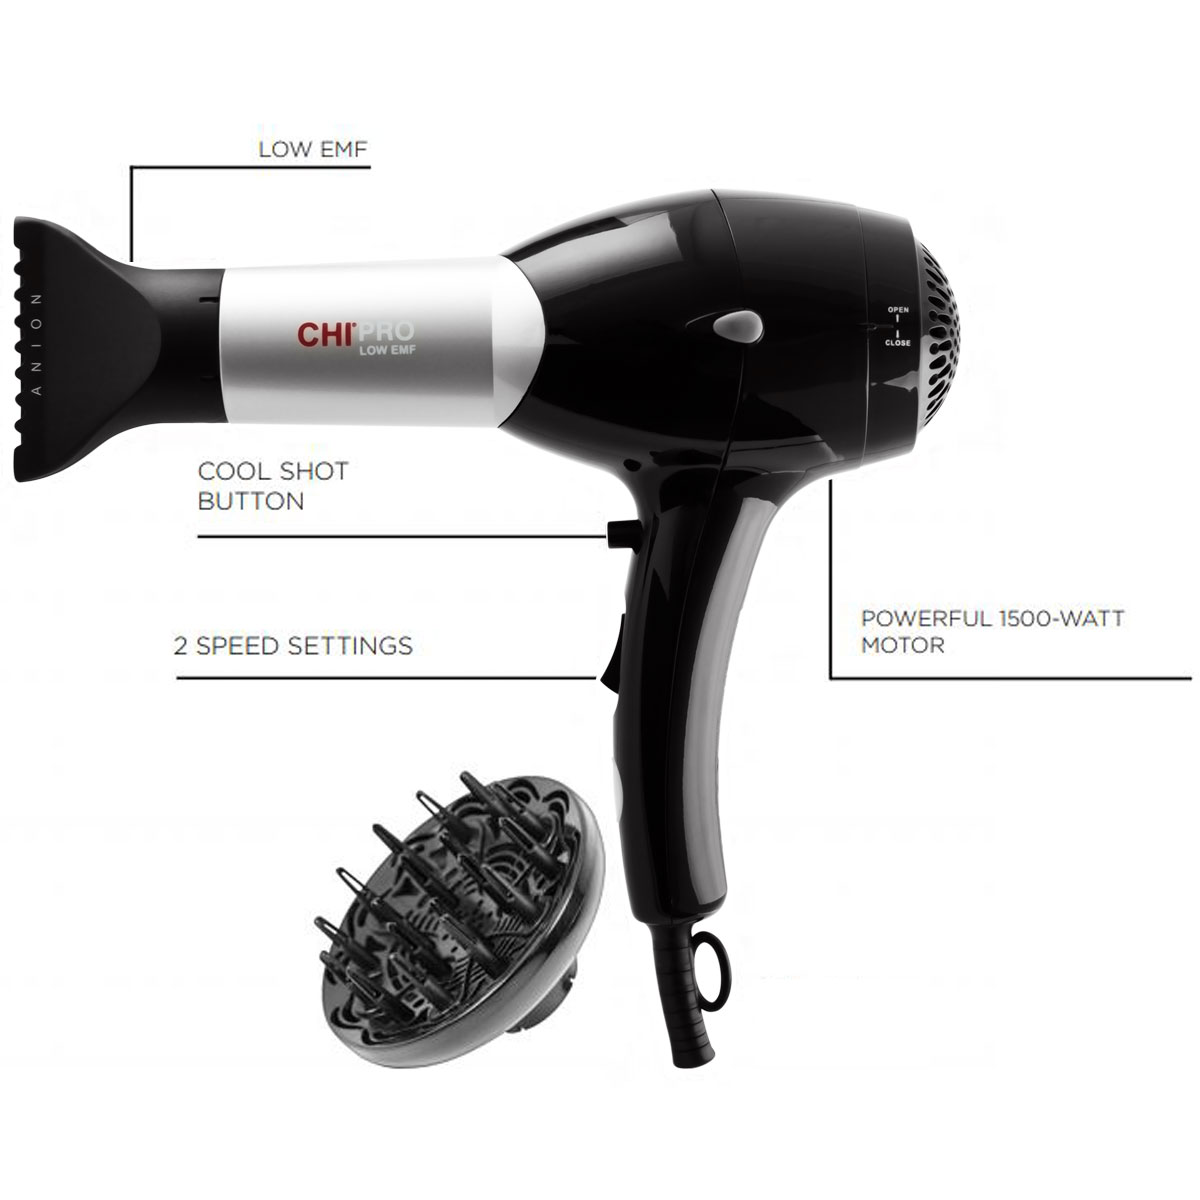 8b6ecb633bad02 CHI Pro Hair Dryer - CHI Hair Care / Professional Blow Dryer